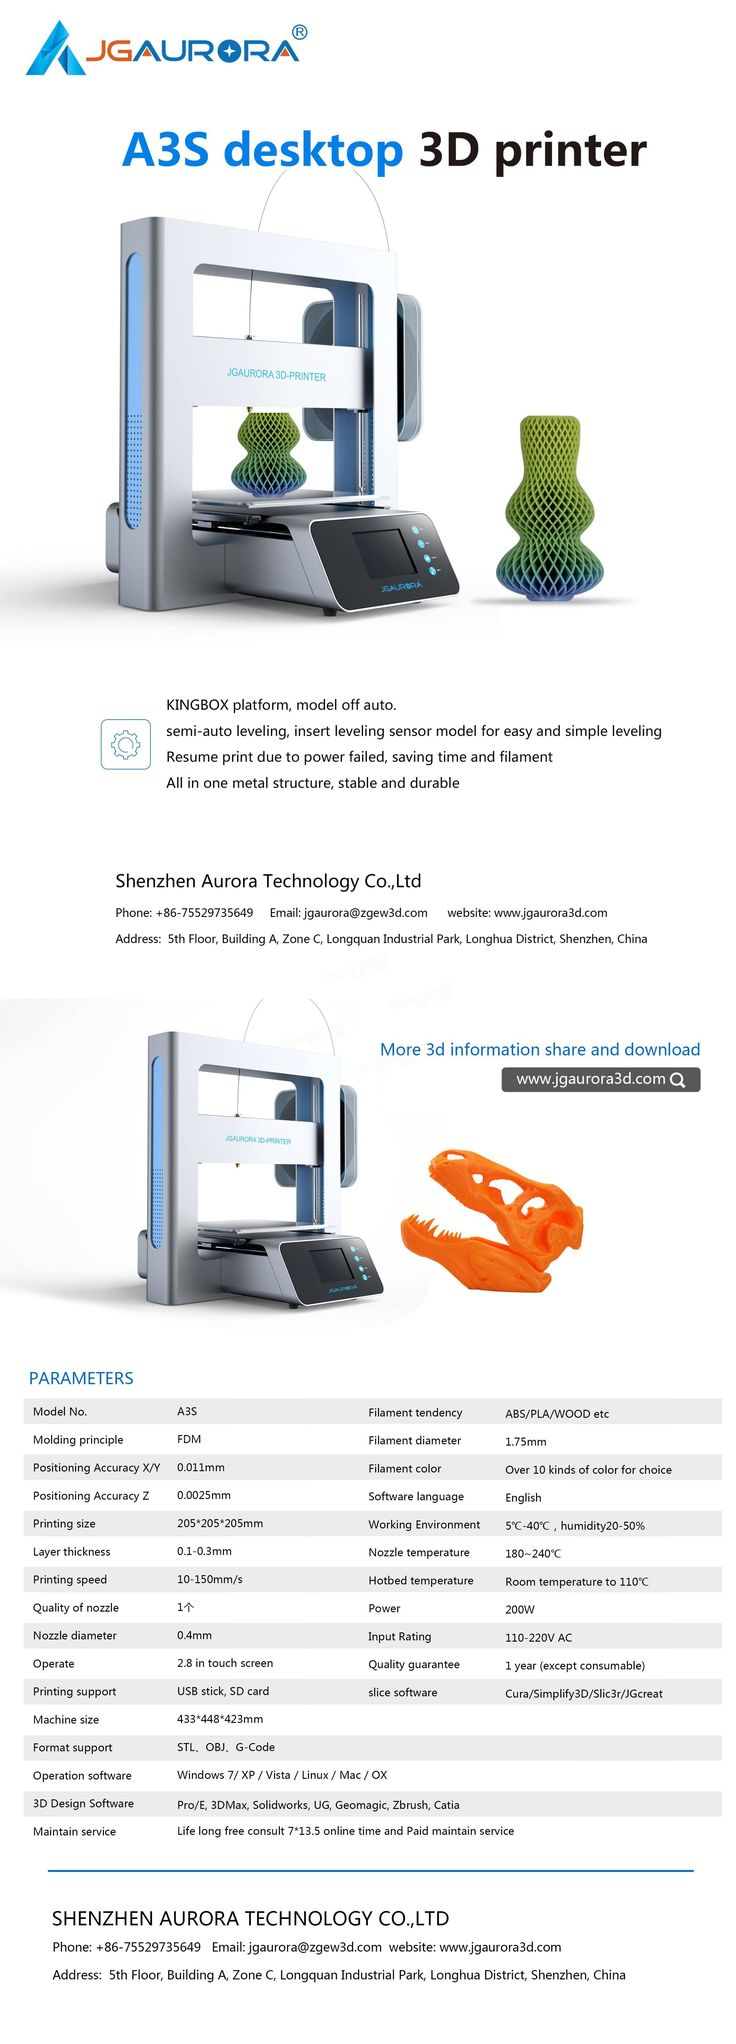 JGAURORA® A3S DIY 3D Printer Kit 205*205*205mm Printing Size Support Resume Print & Filament Run-Out Detection 1.75mm 0.4mm Nozzle